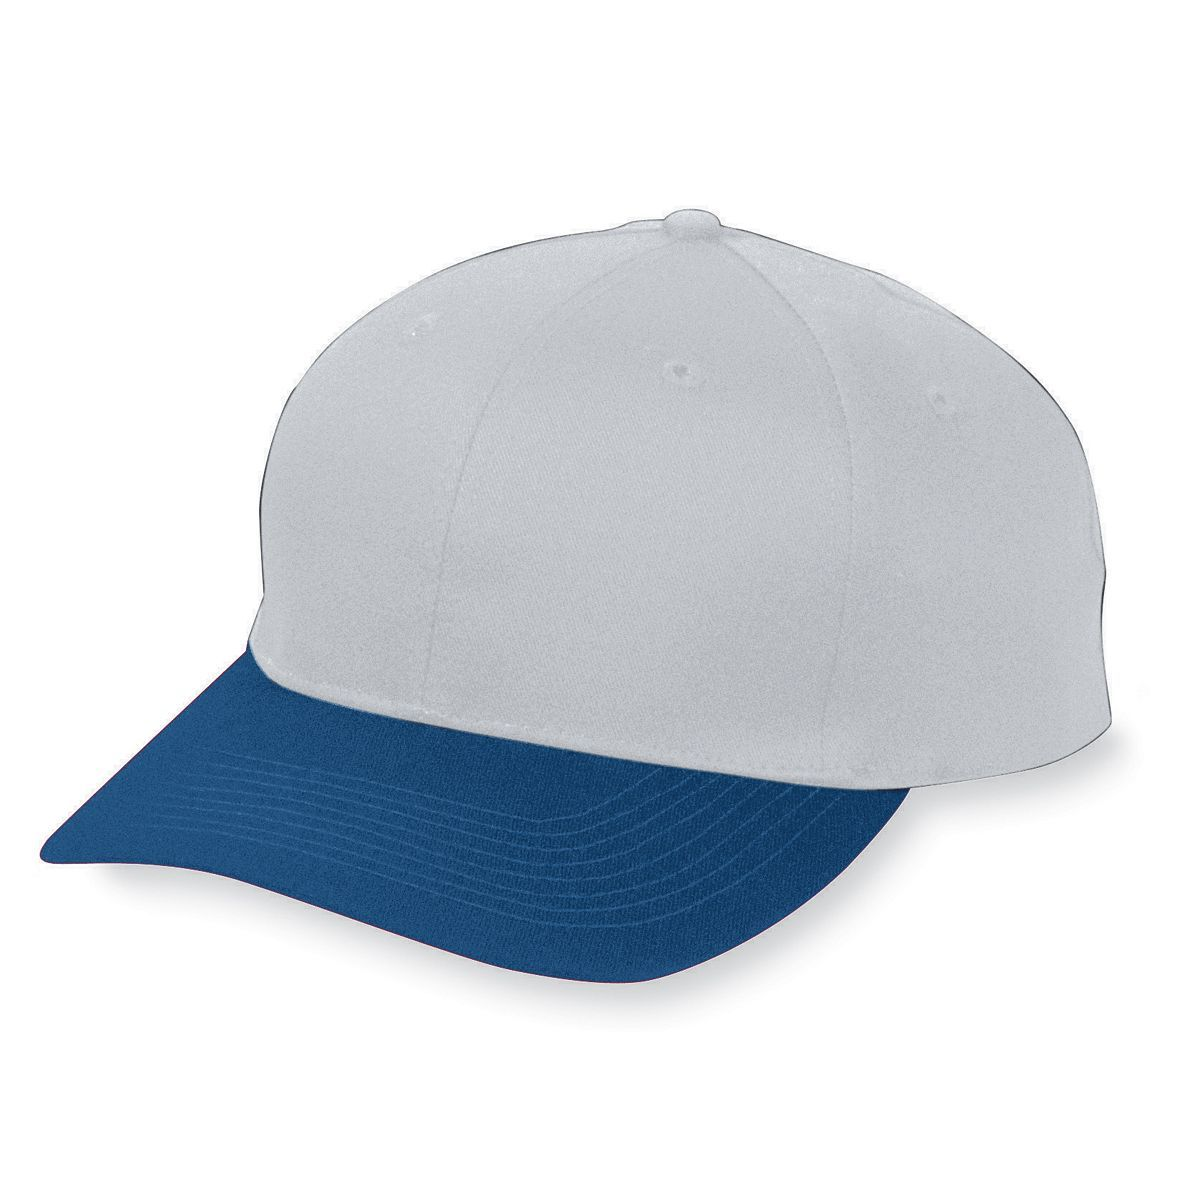 Six-Panel Cotton Twill Low-Profile Cap - SILVER GREY/NAVY